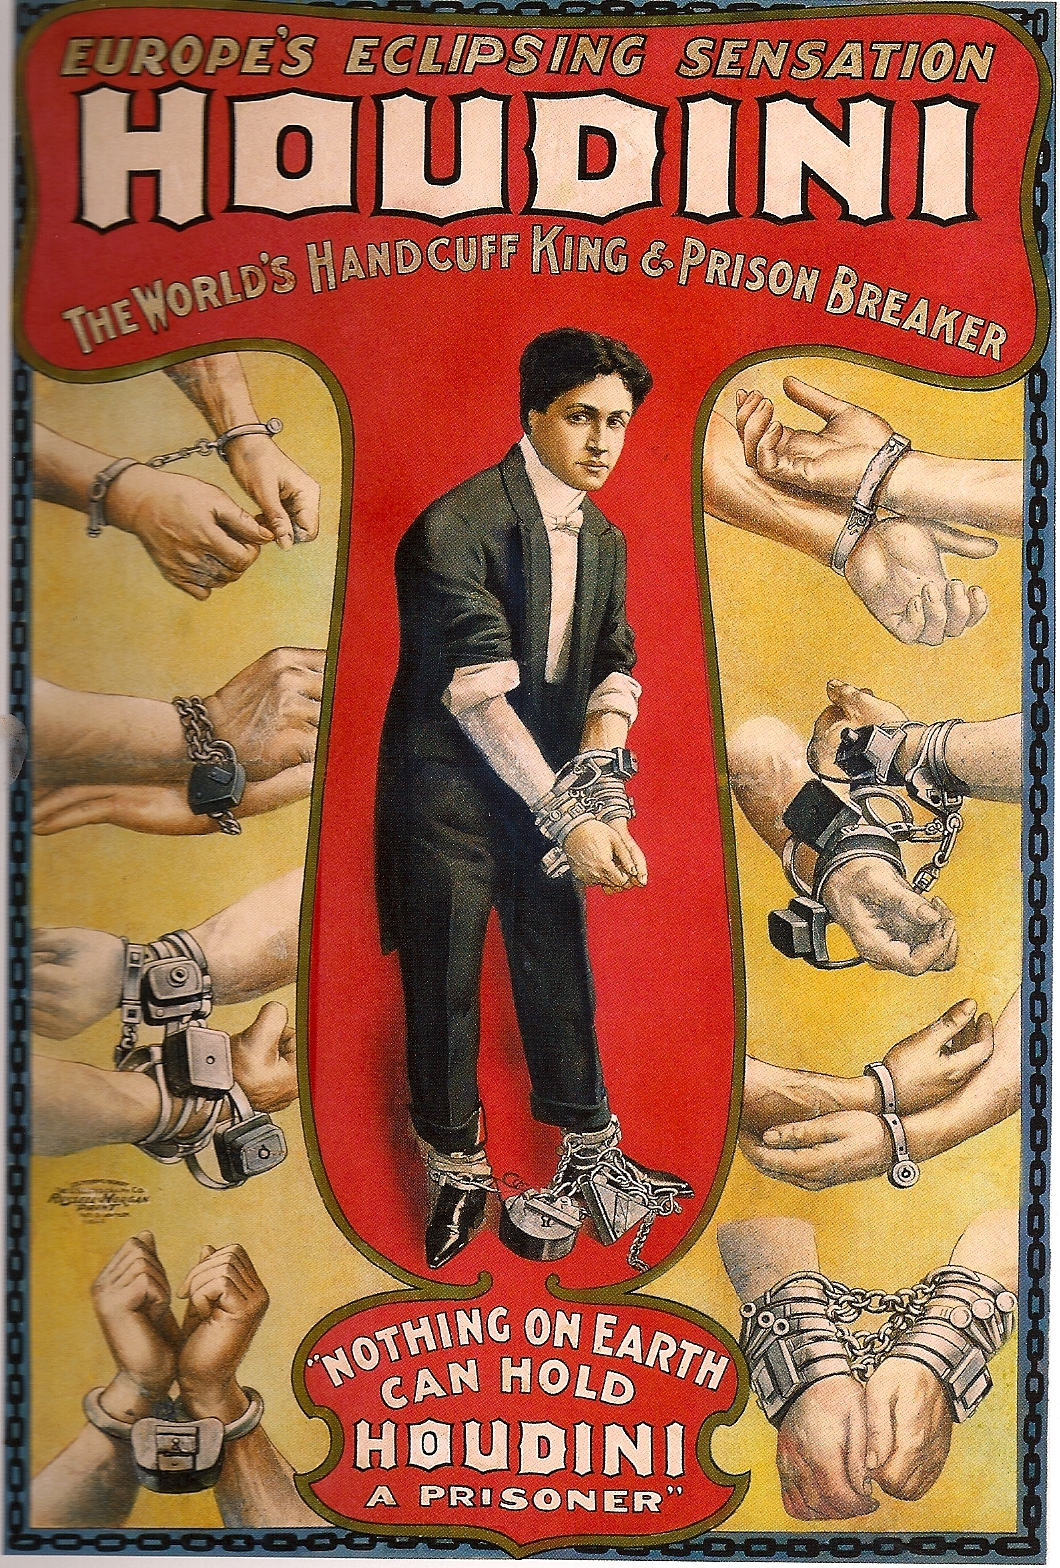 Poster for Houdini's European tour